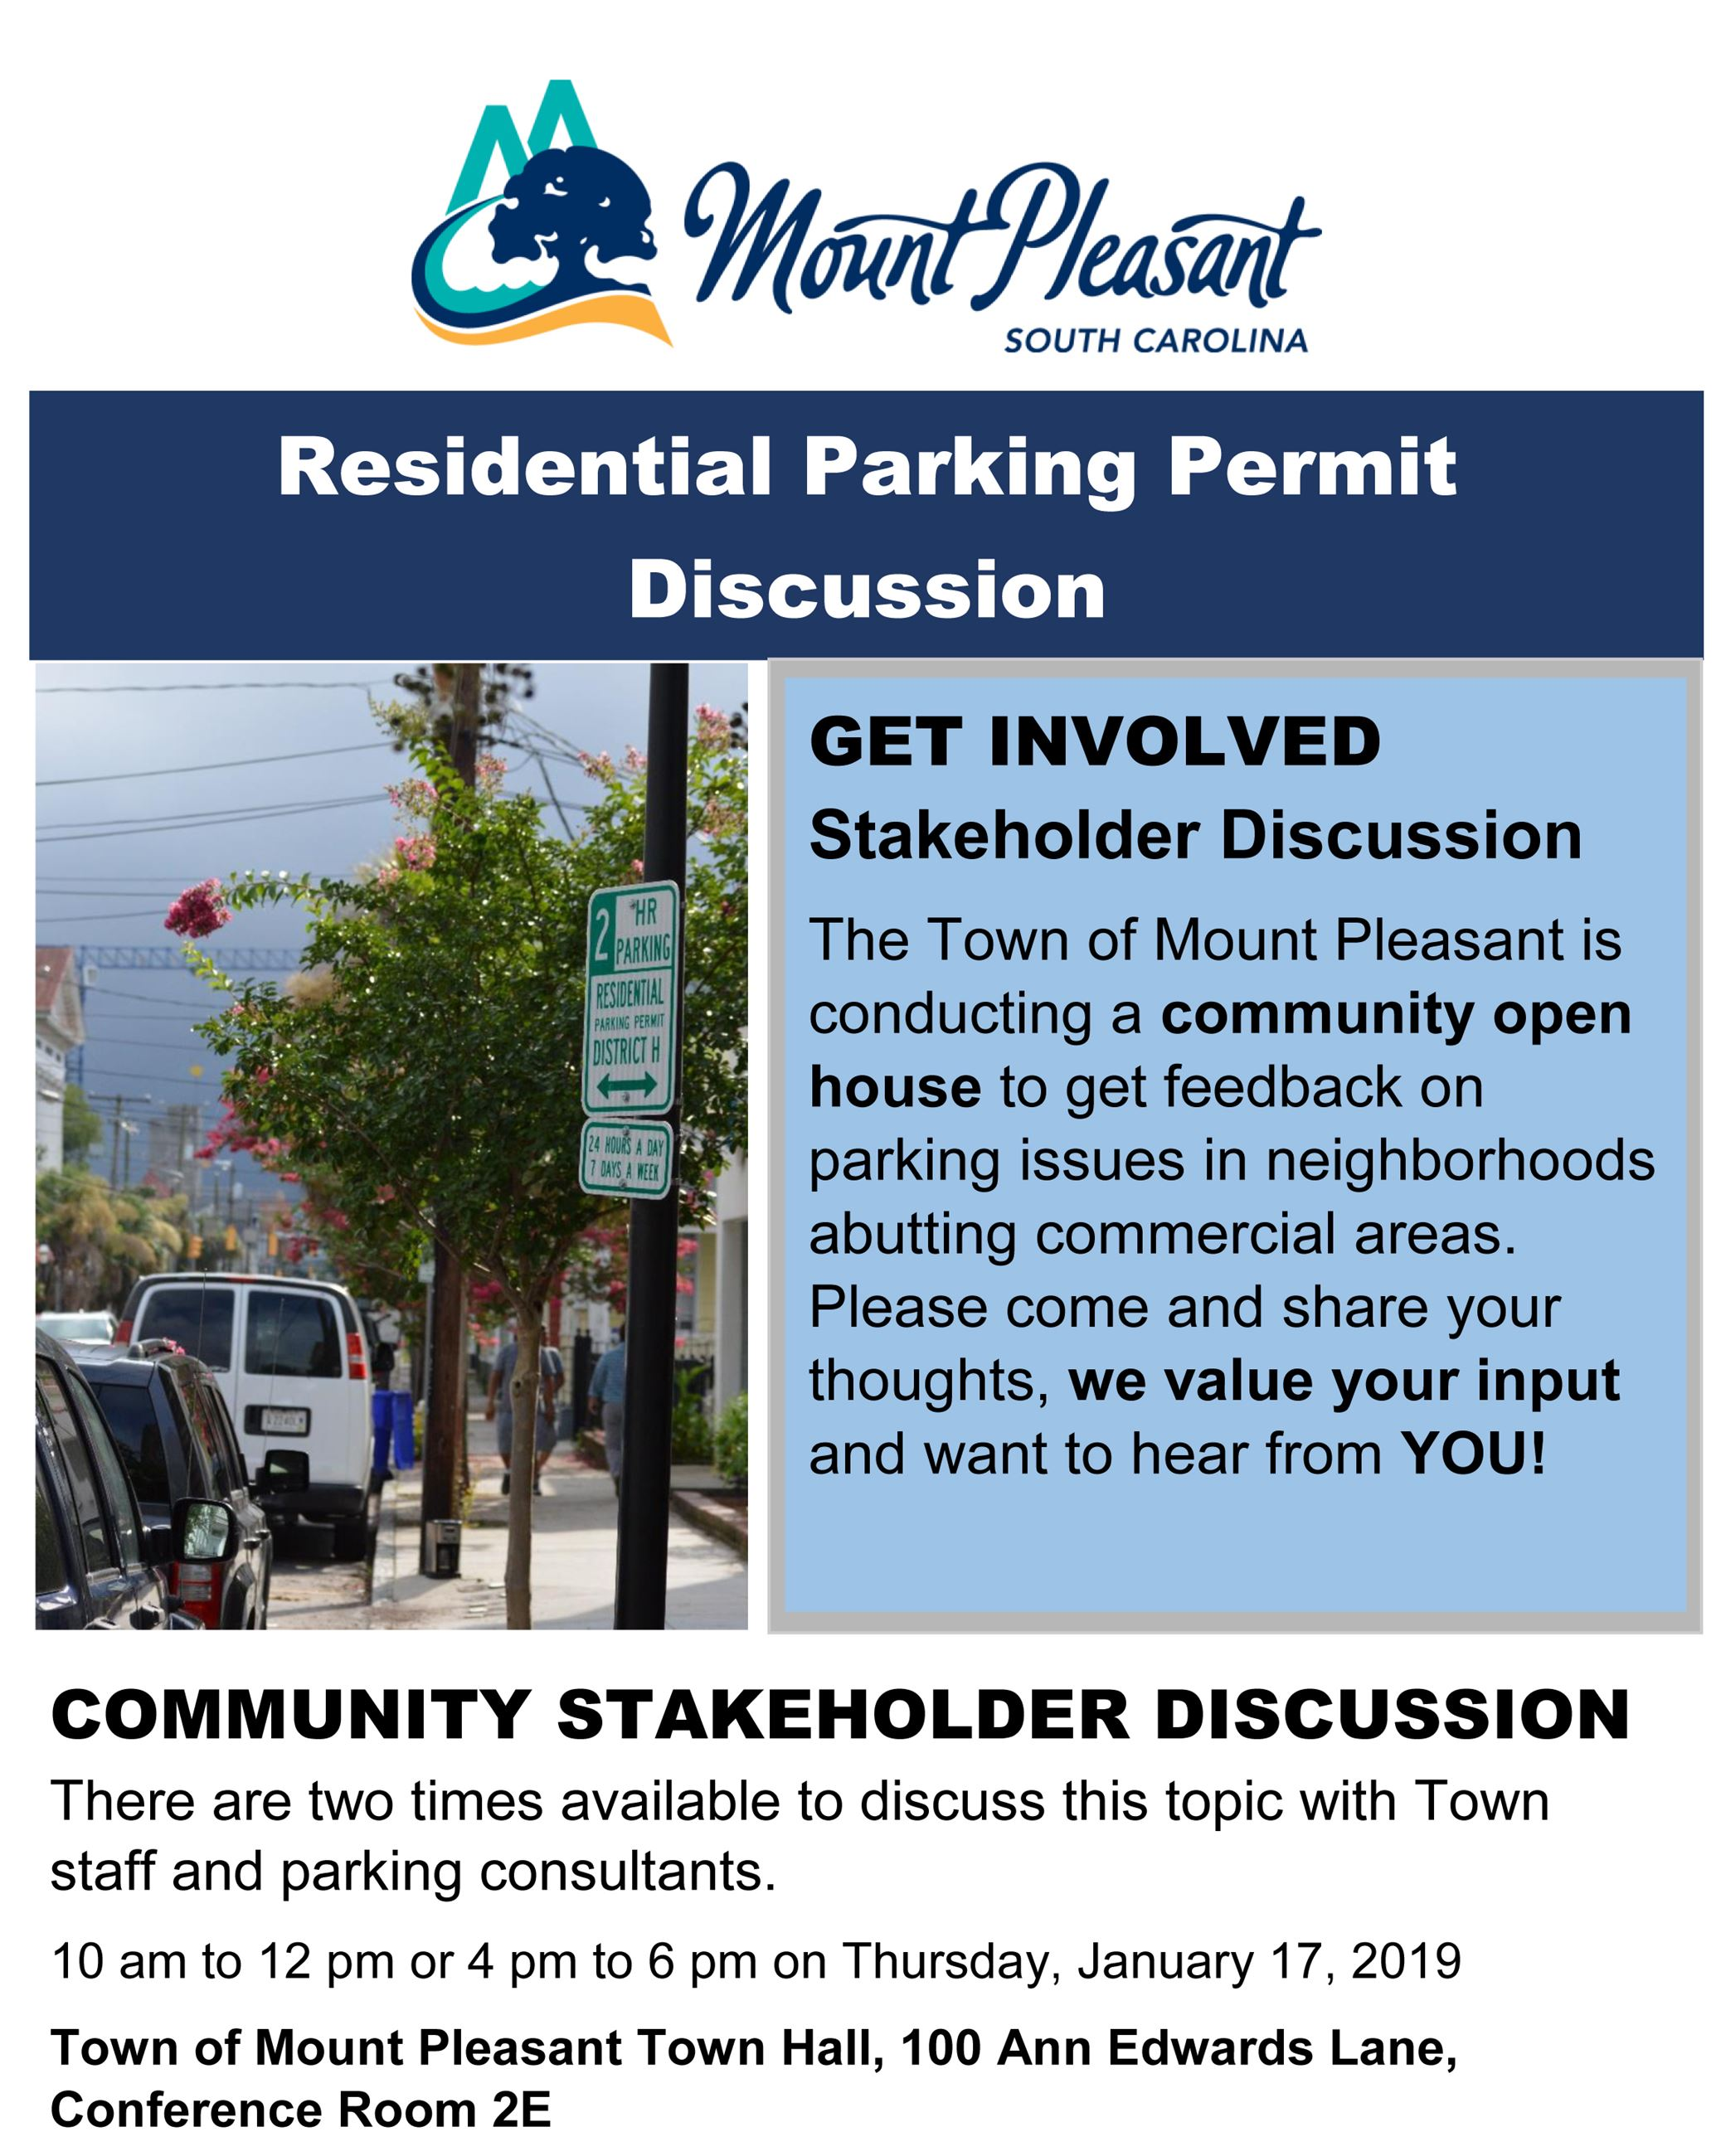 011719_Parking_Permit_Discussion